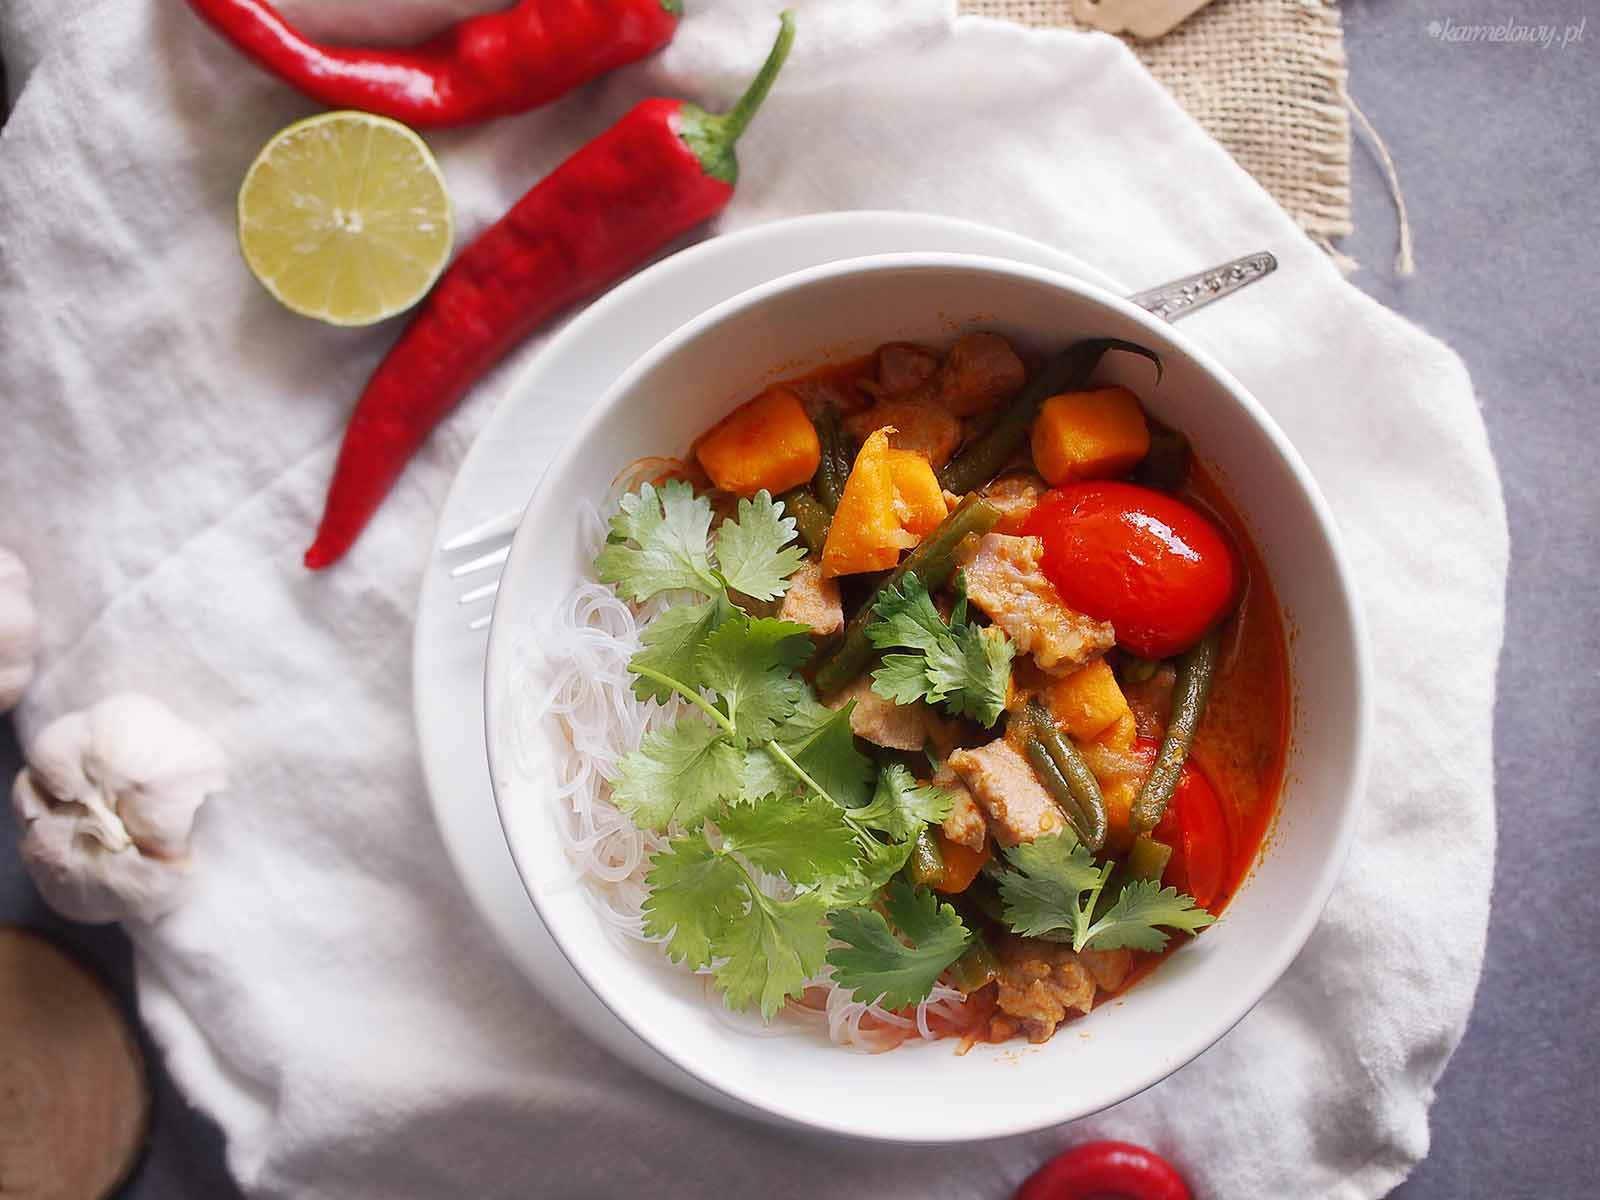 Czerwone-curry-z-ryba-fasolka-i-batatami-Red-curry-with-fish-beans-and-sweet-potato